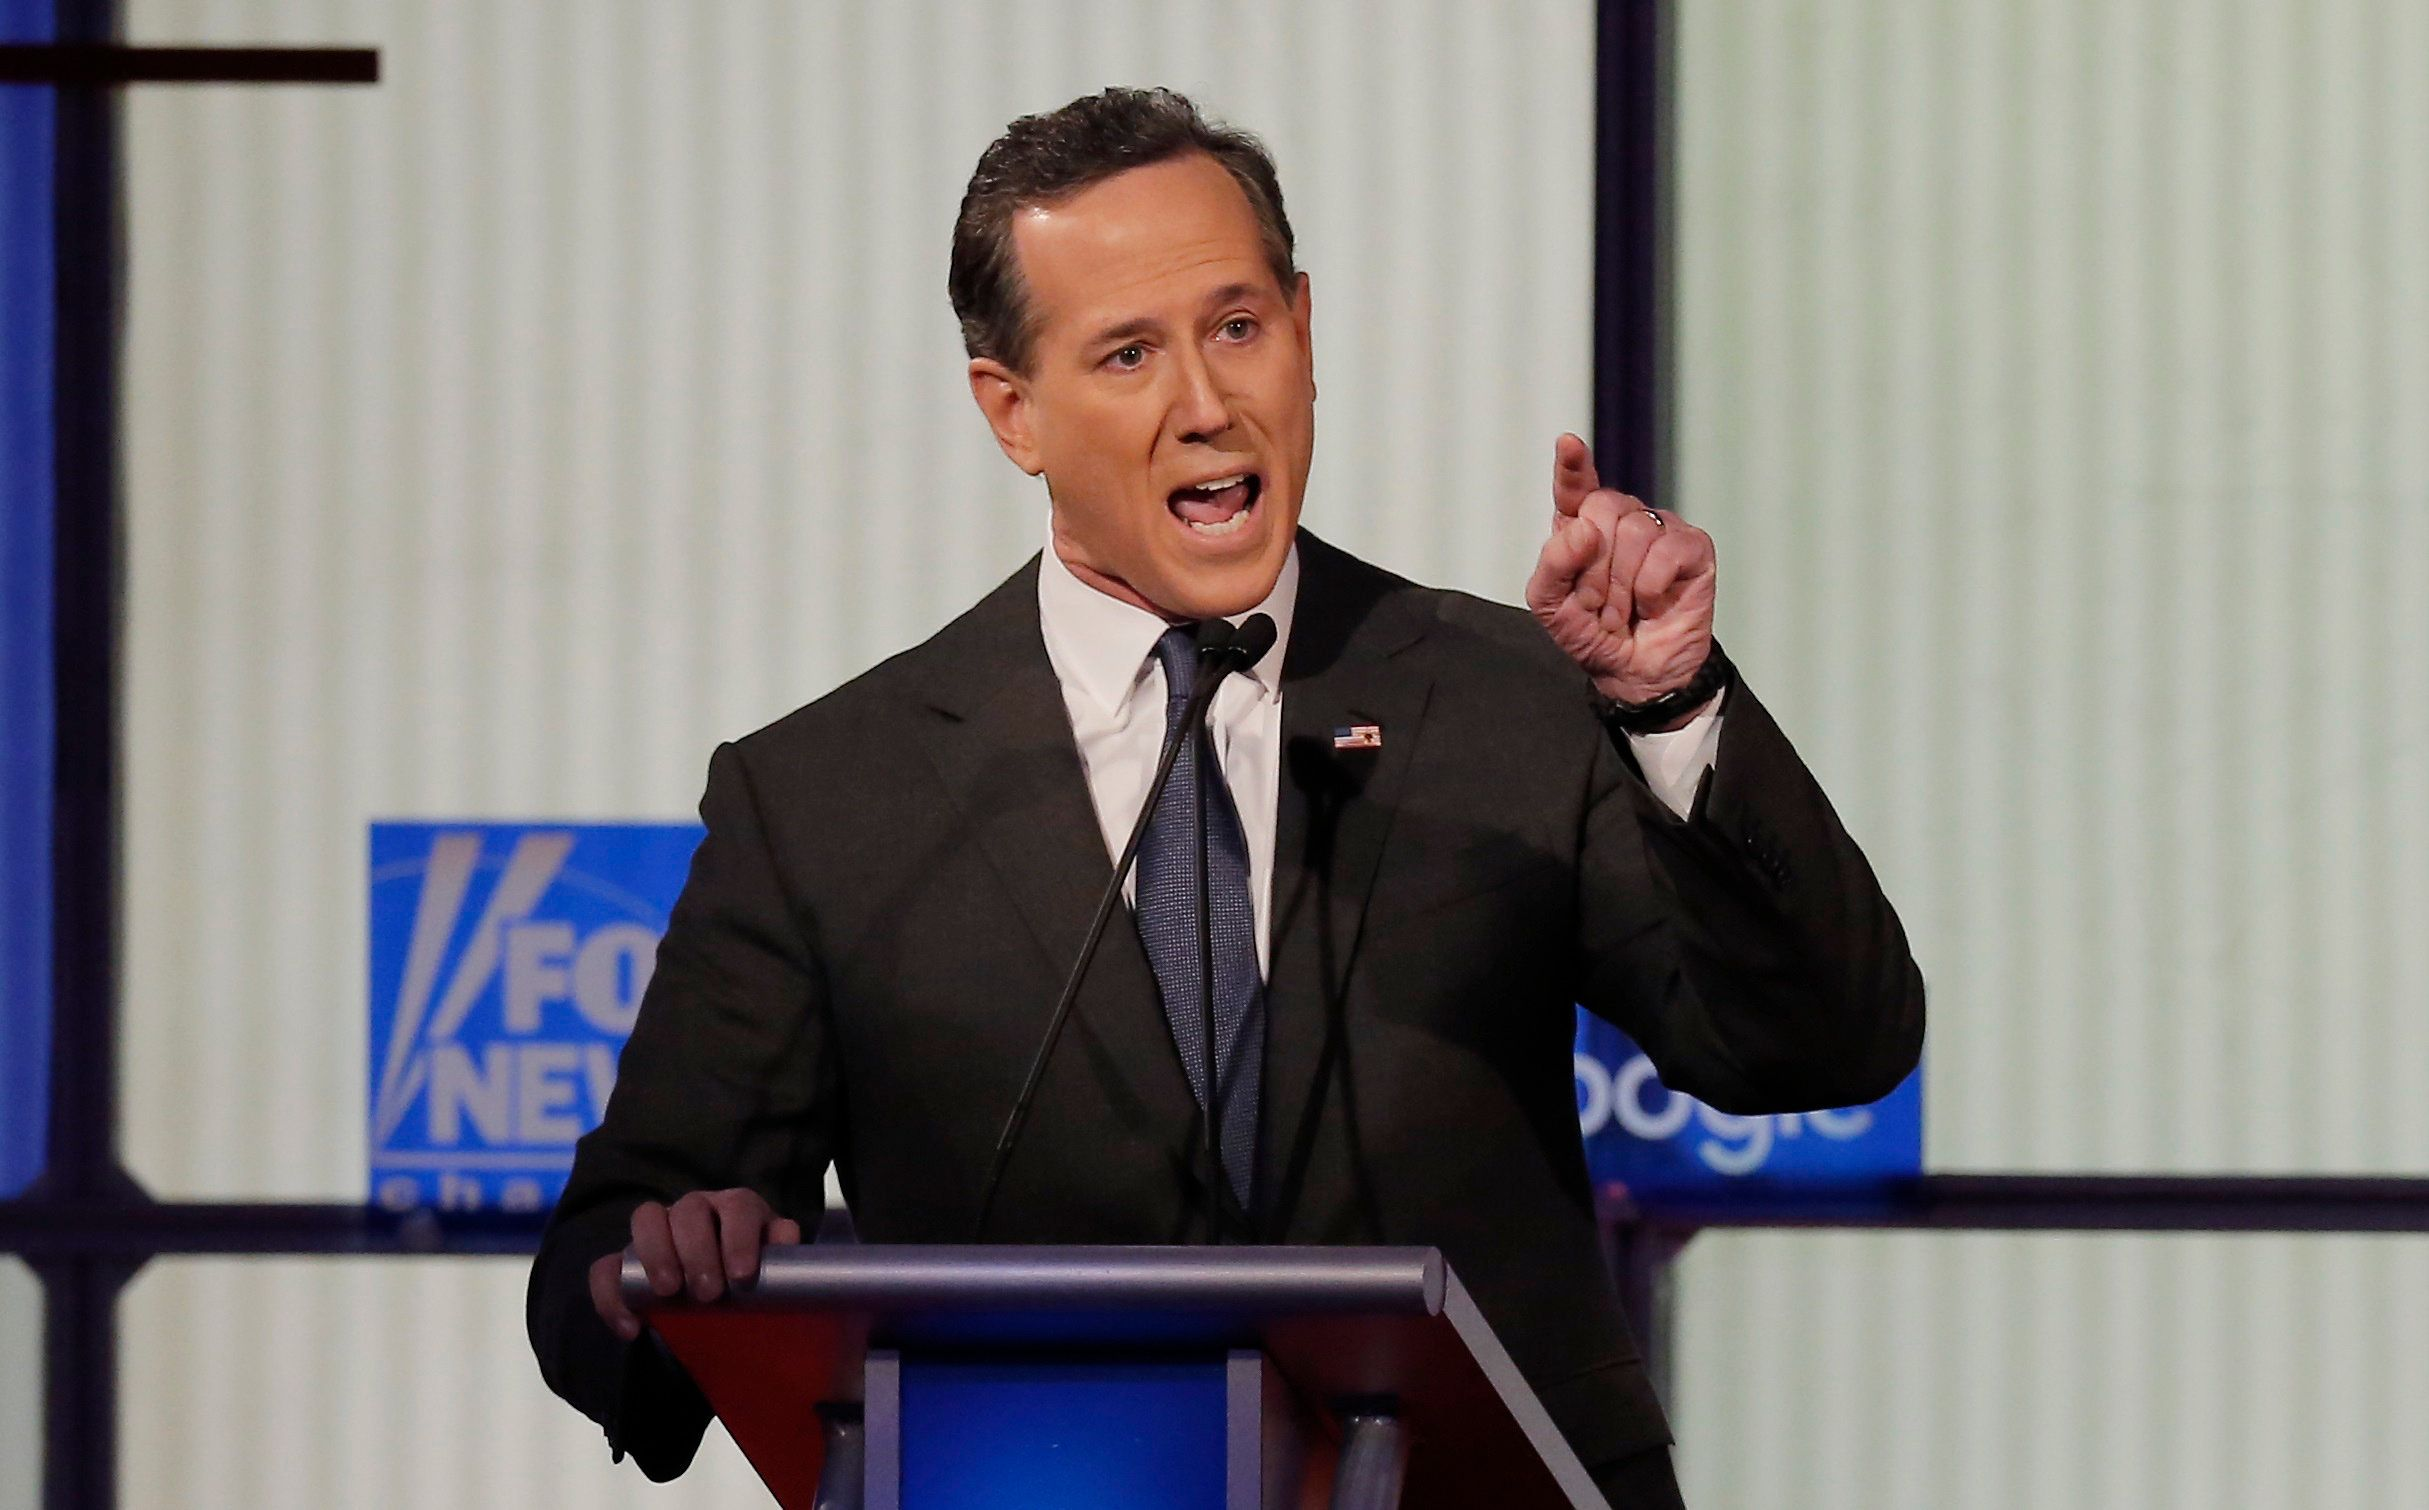 Rick Santorum Blames Absent Dads And Broken Homes For Mass Shooters